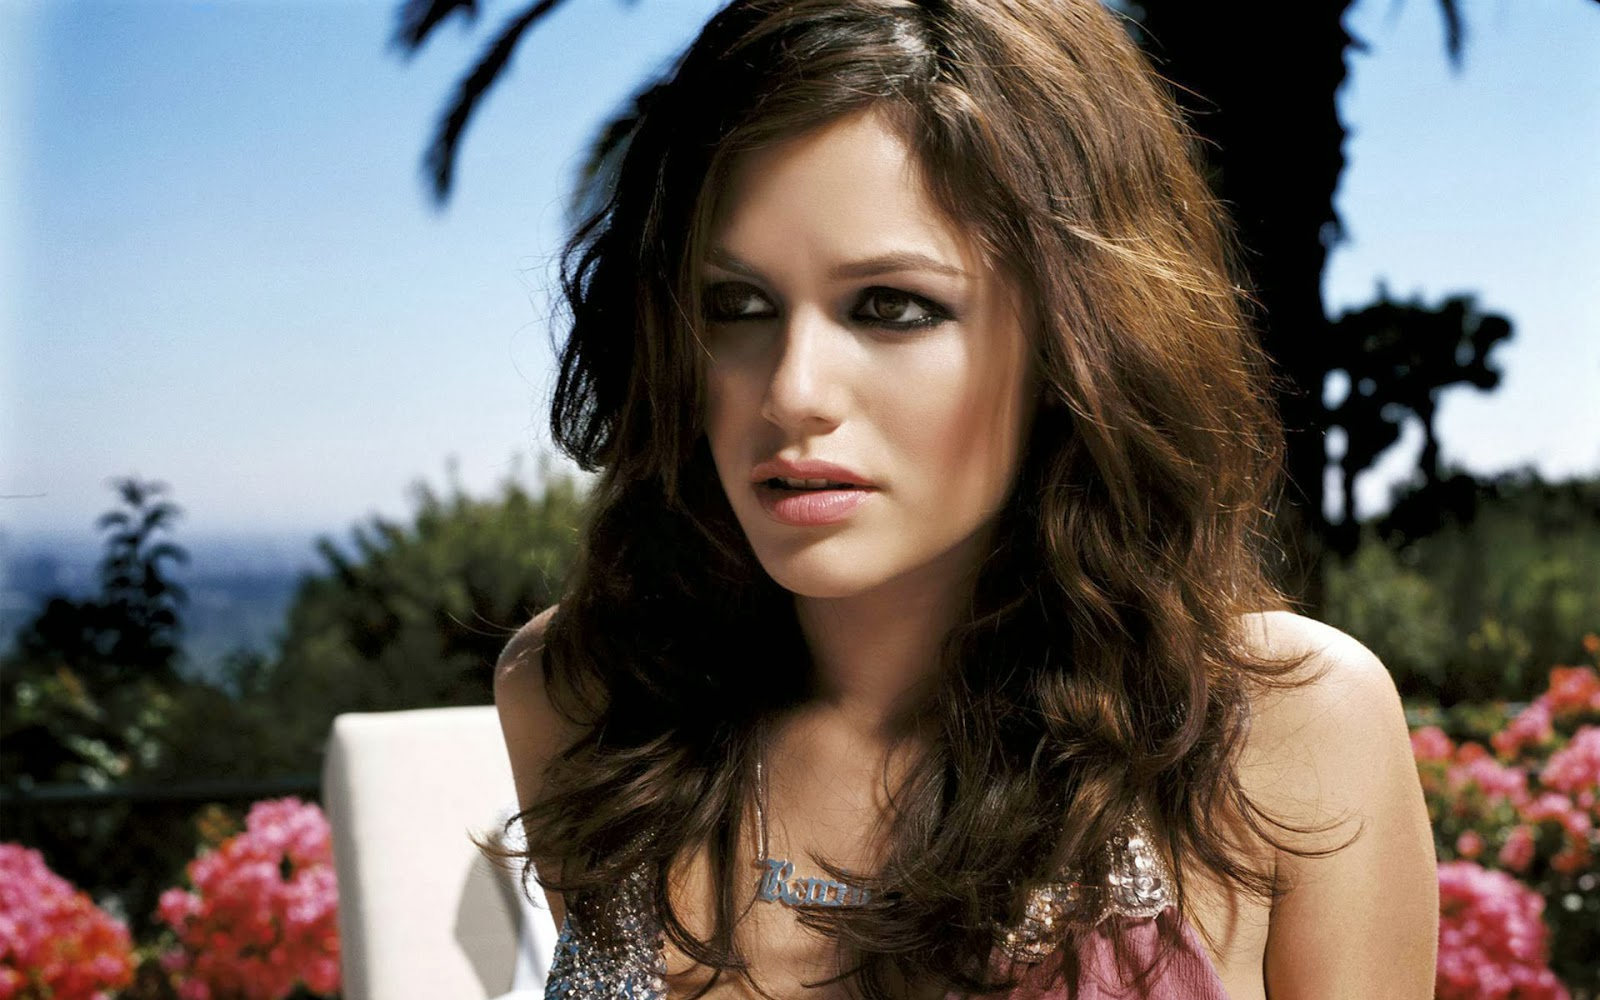 rachel bilson latest wallpapers 2013 - photo #6